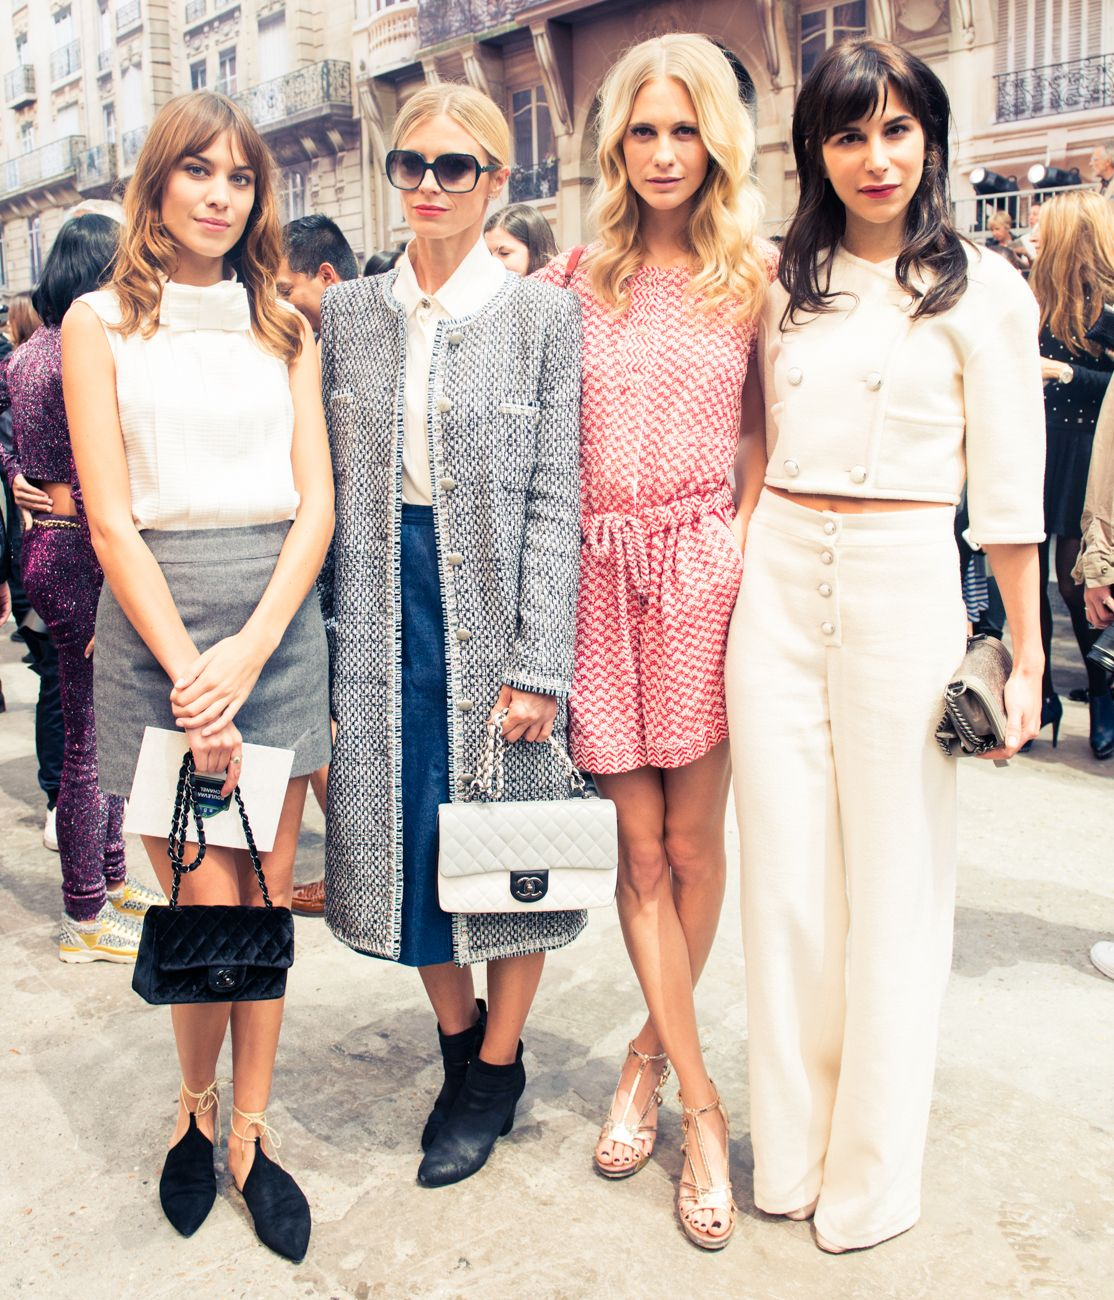 #CHANEL's Frow. http://www.thecoveteur.com/chanel-springsummer-2015 #pixiemarket